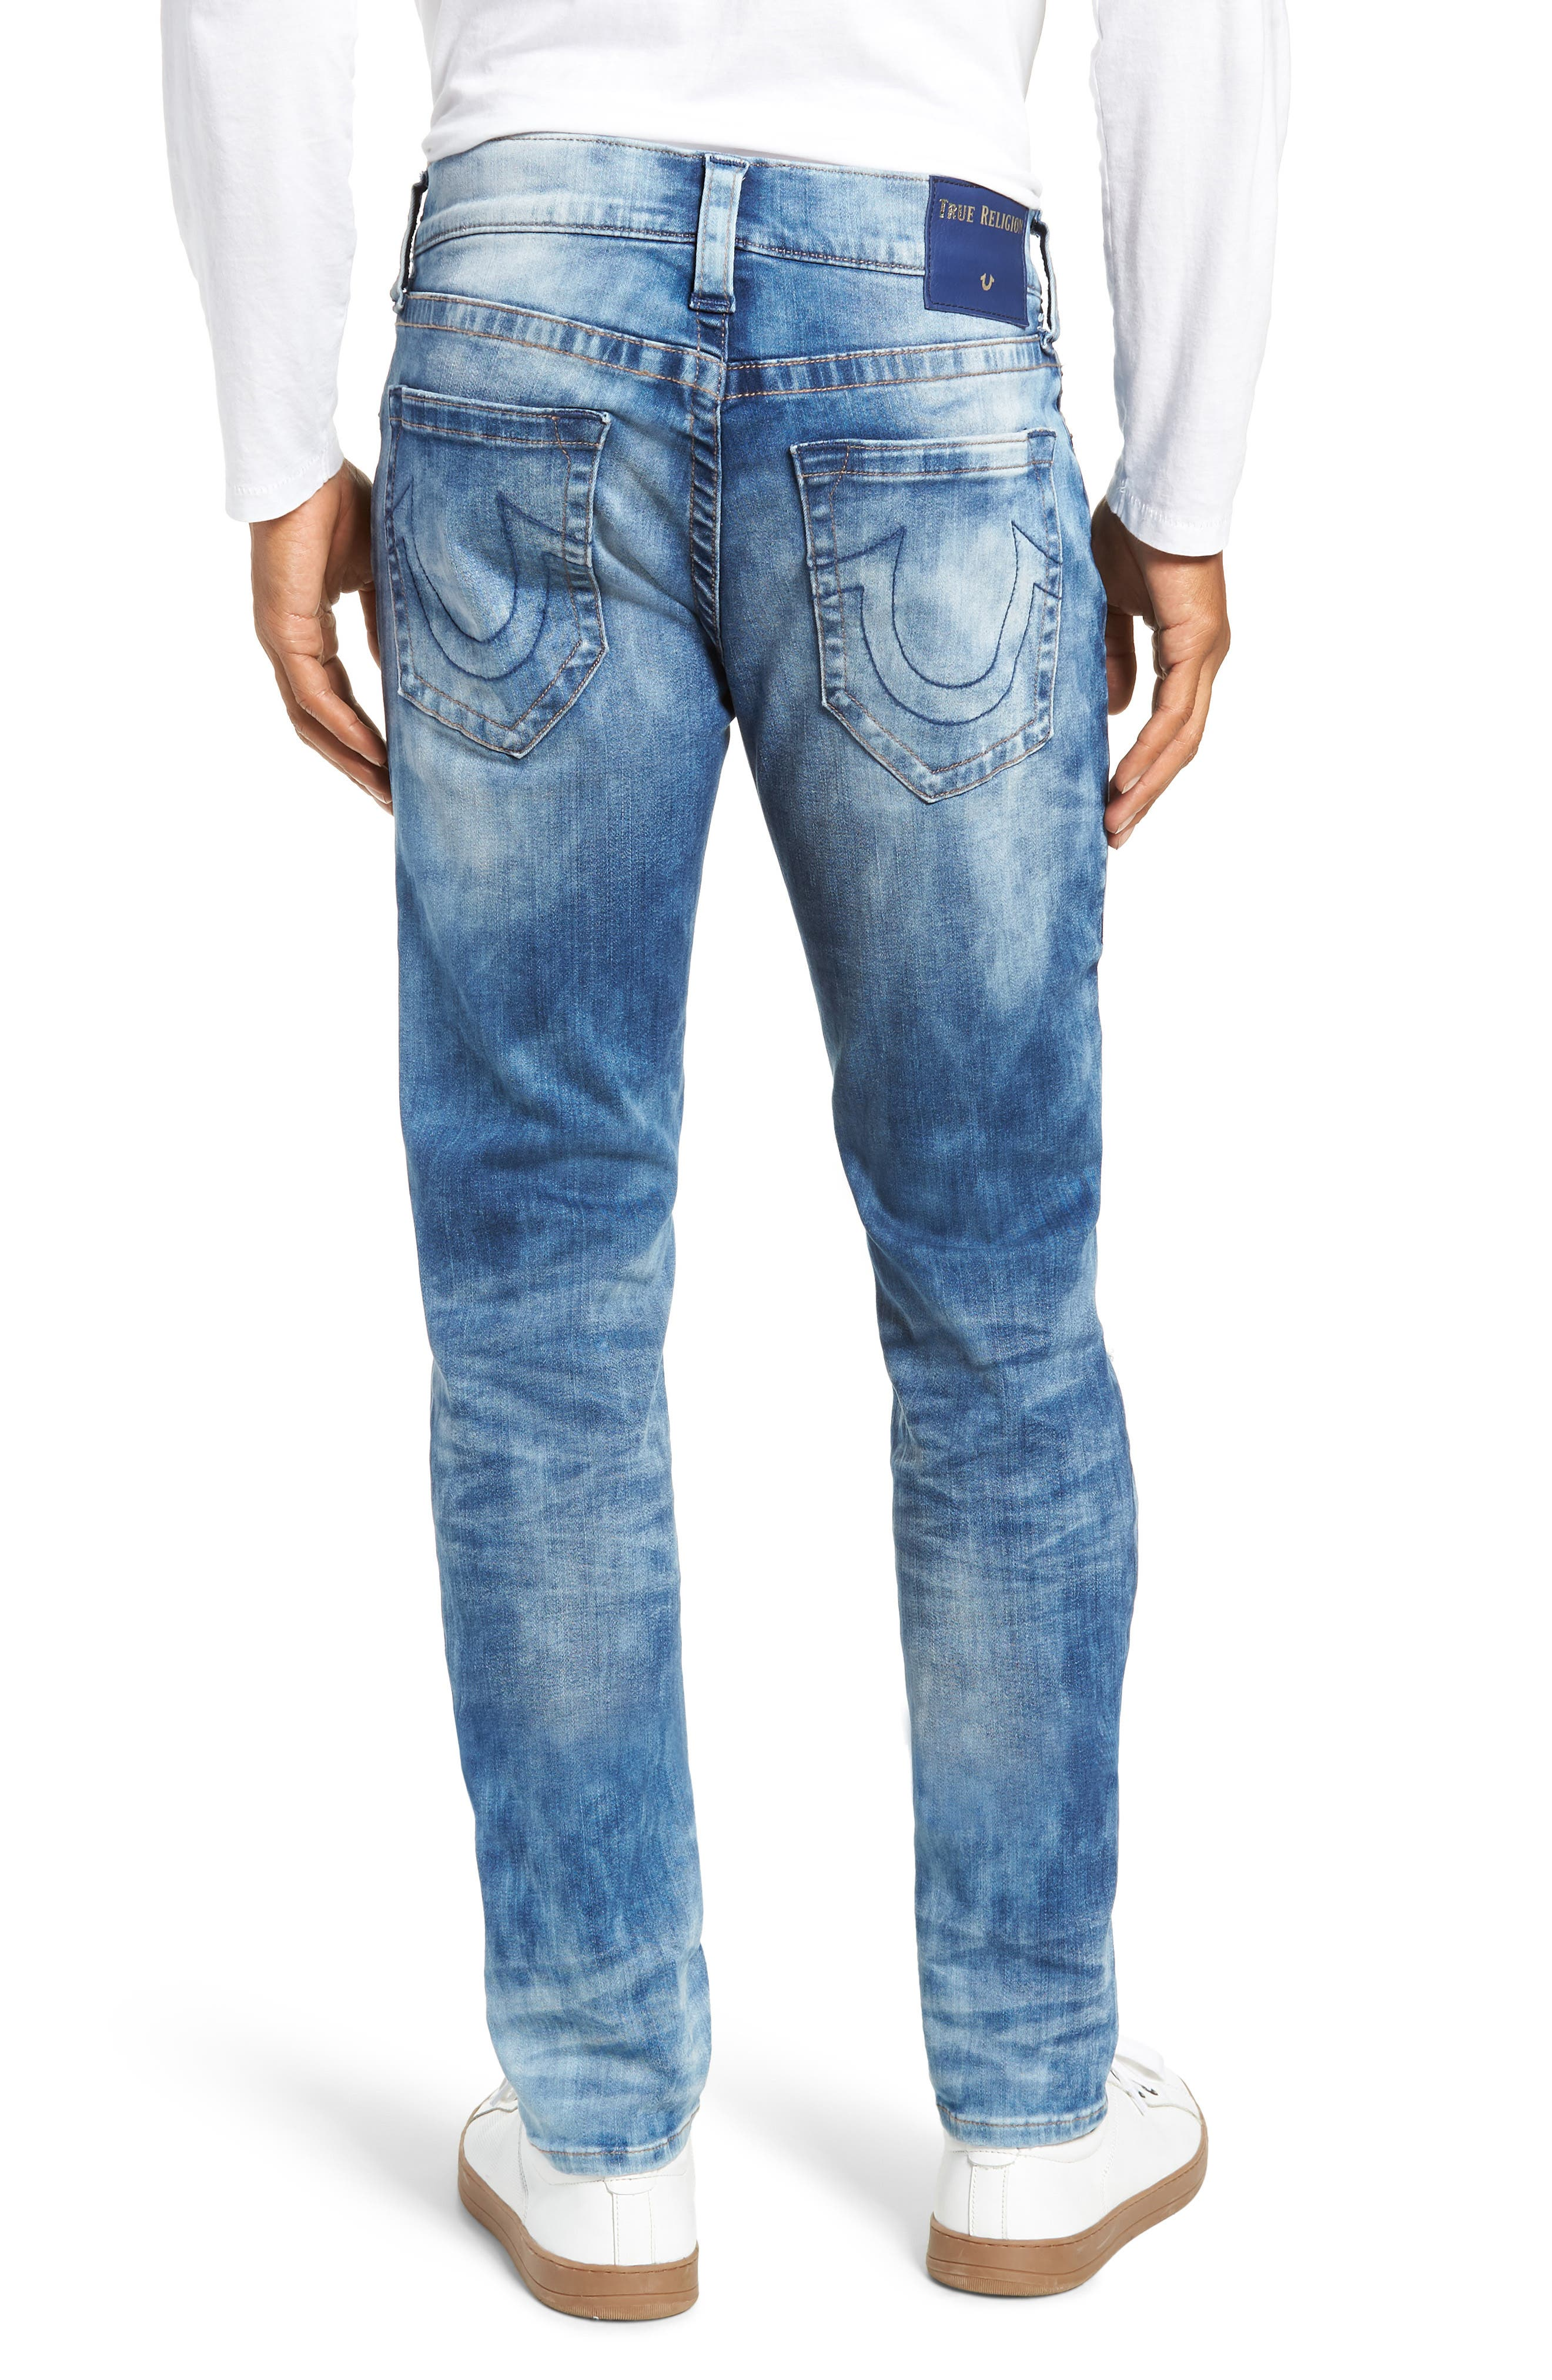 Rocco Skinny Fit Jeans,                             Alternate thumbnail 2, color,                             BLUE RIOT